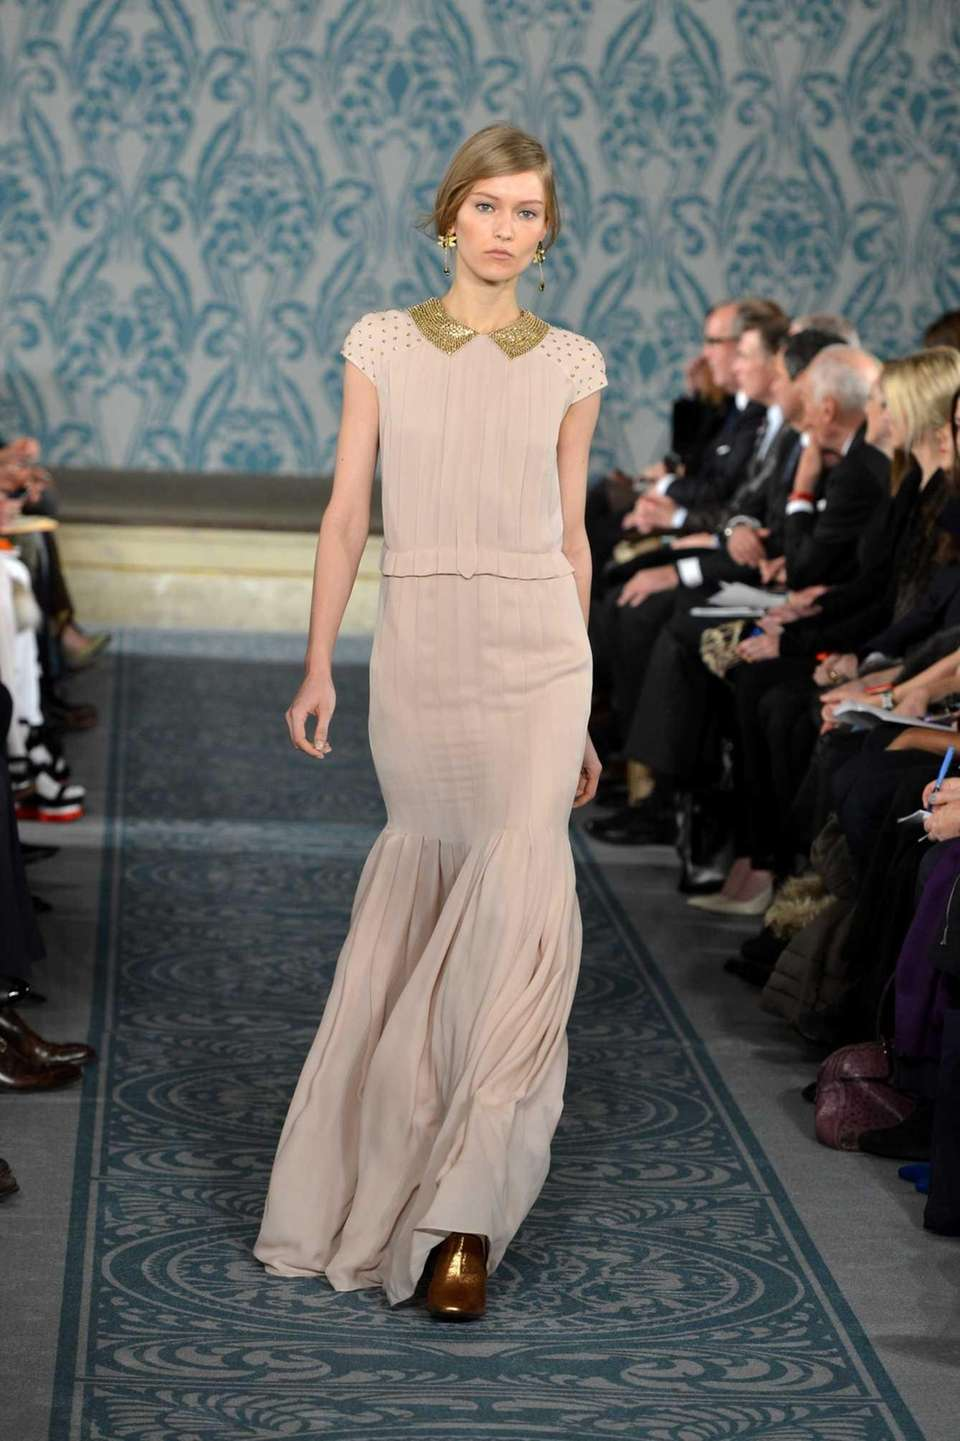 A golden, slim-fitting dress featured at the Tory